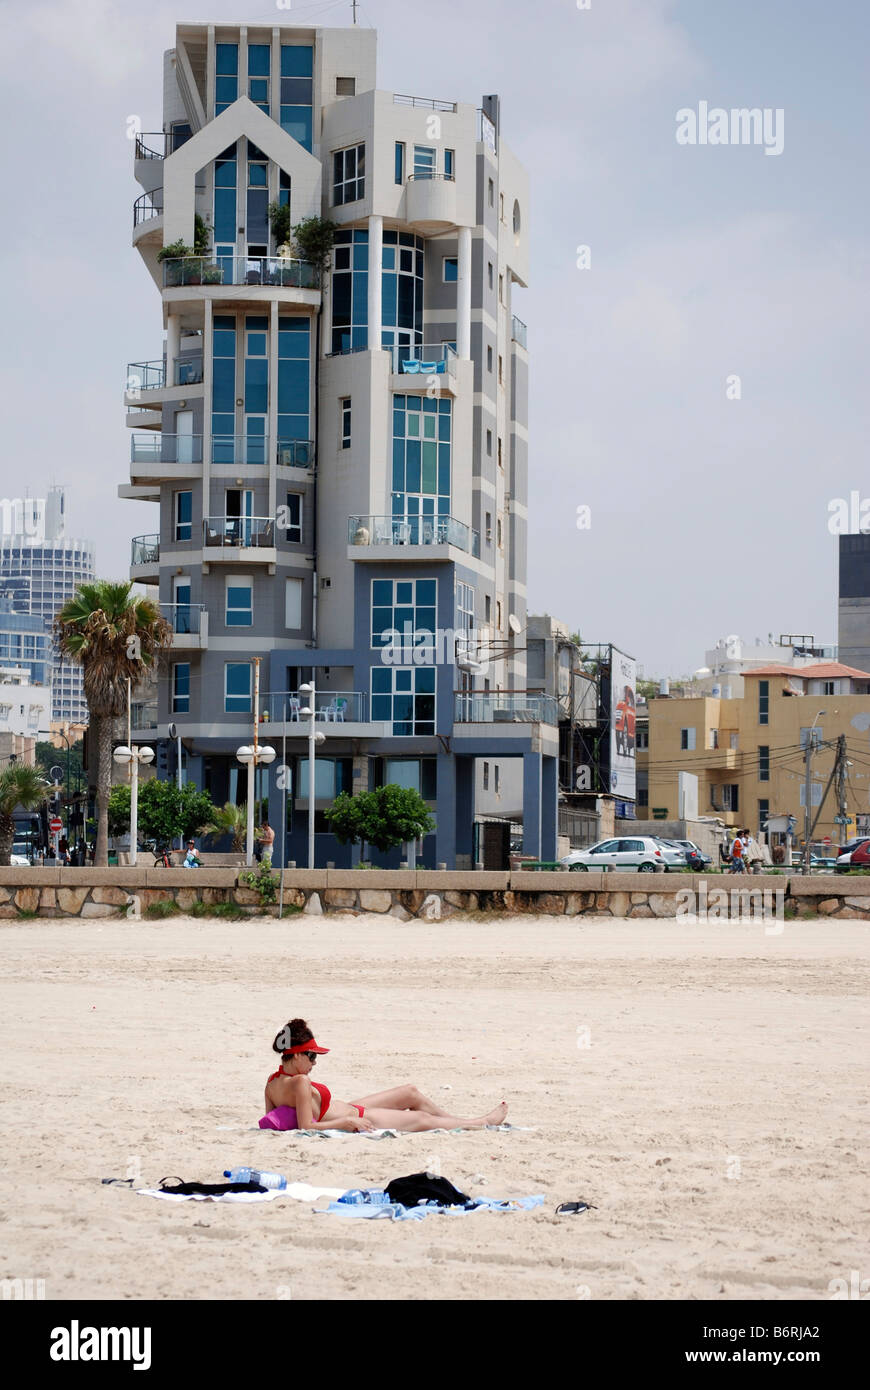 Israel Tel Aviv a woman sunbathing on the beach a modern building on Trumpeldor street in the background - Stock Image